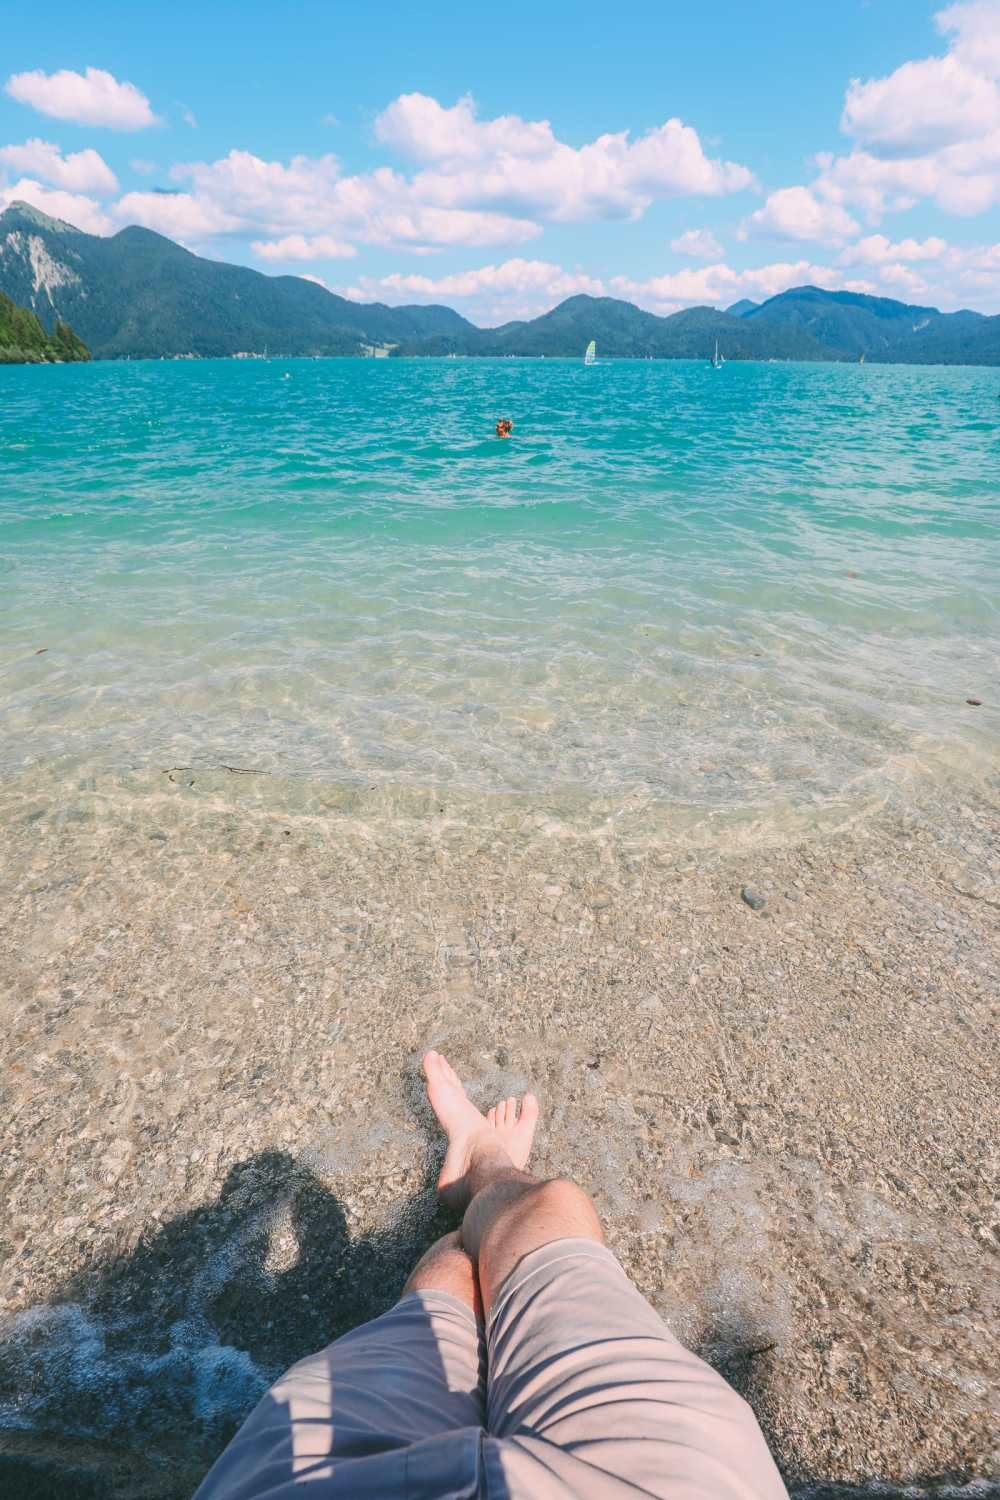 Walchensee - One Of The Most Beautiful Views In The Alps Of Germany (...And It's Got A Beach Too!) (22)